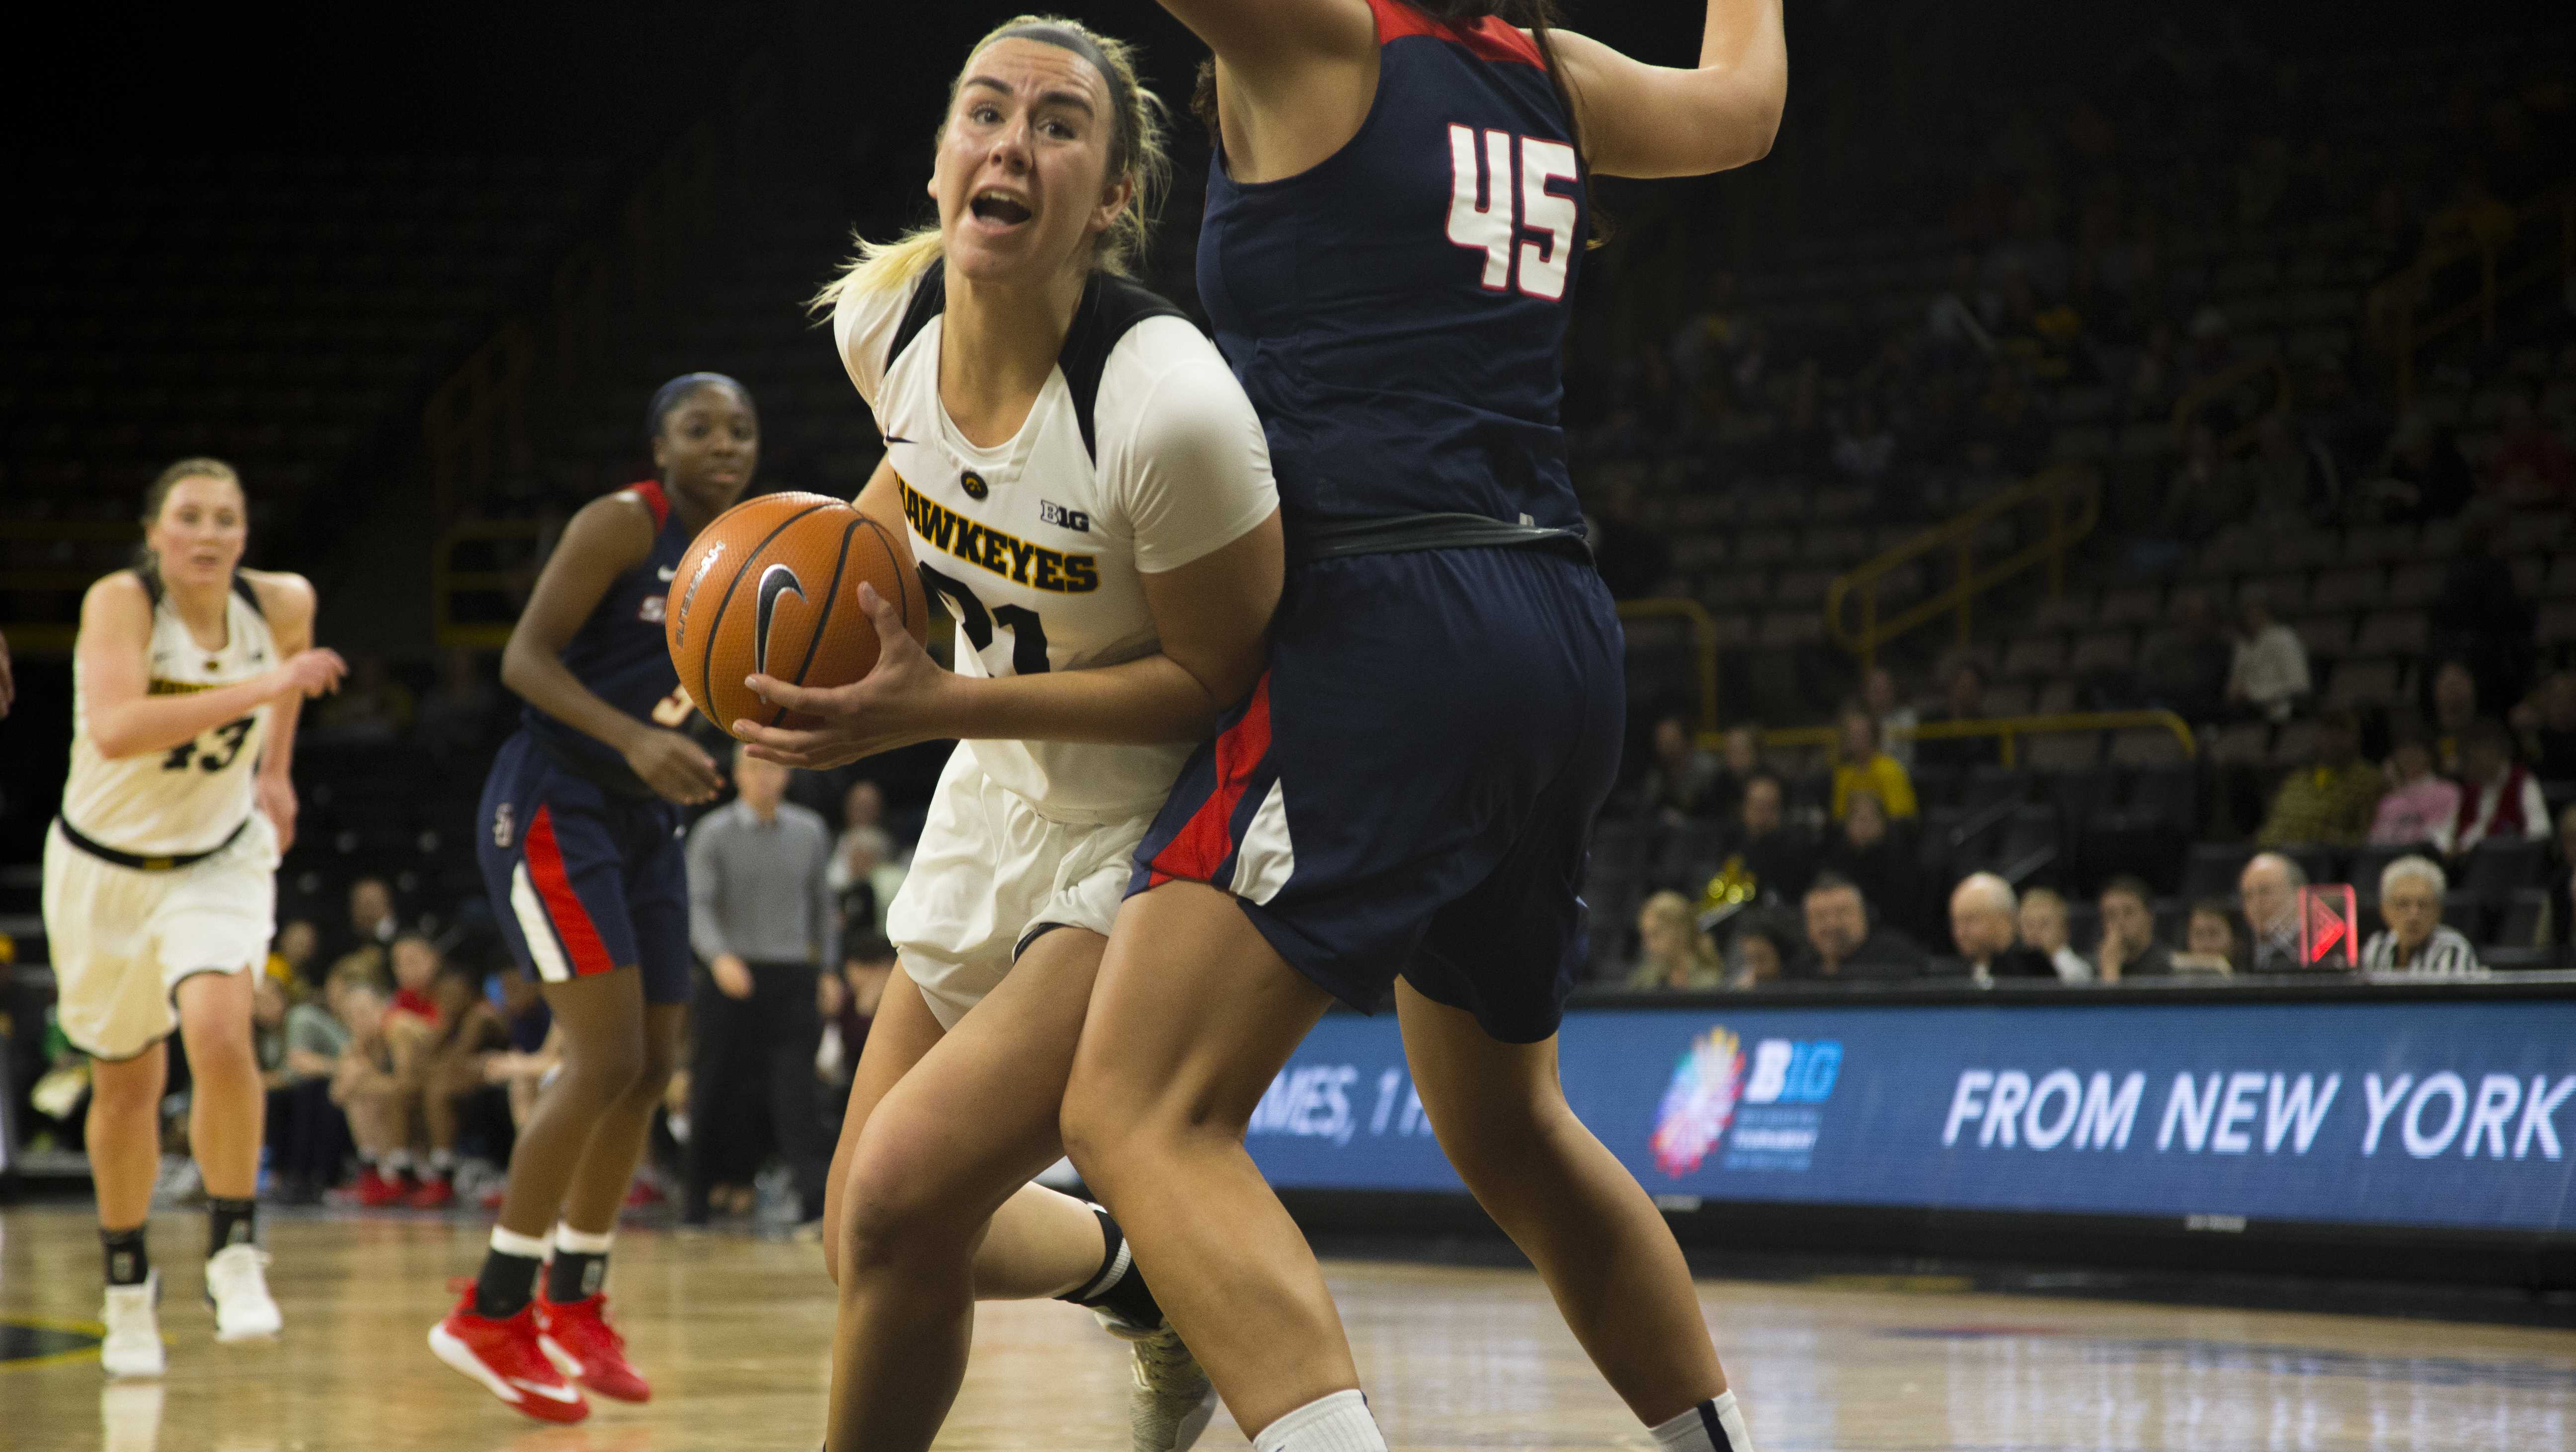 Iowa forward Hannah Stewart drives to the hoop during the Iowa/Samford basketball game at Carver-Hawkeye Arena on Sunday, Dec. 3, 2017. The Hawkeyes defeated the Bulldogs, 80-59. (Lily Smith/The Daily Iowan)